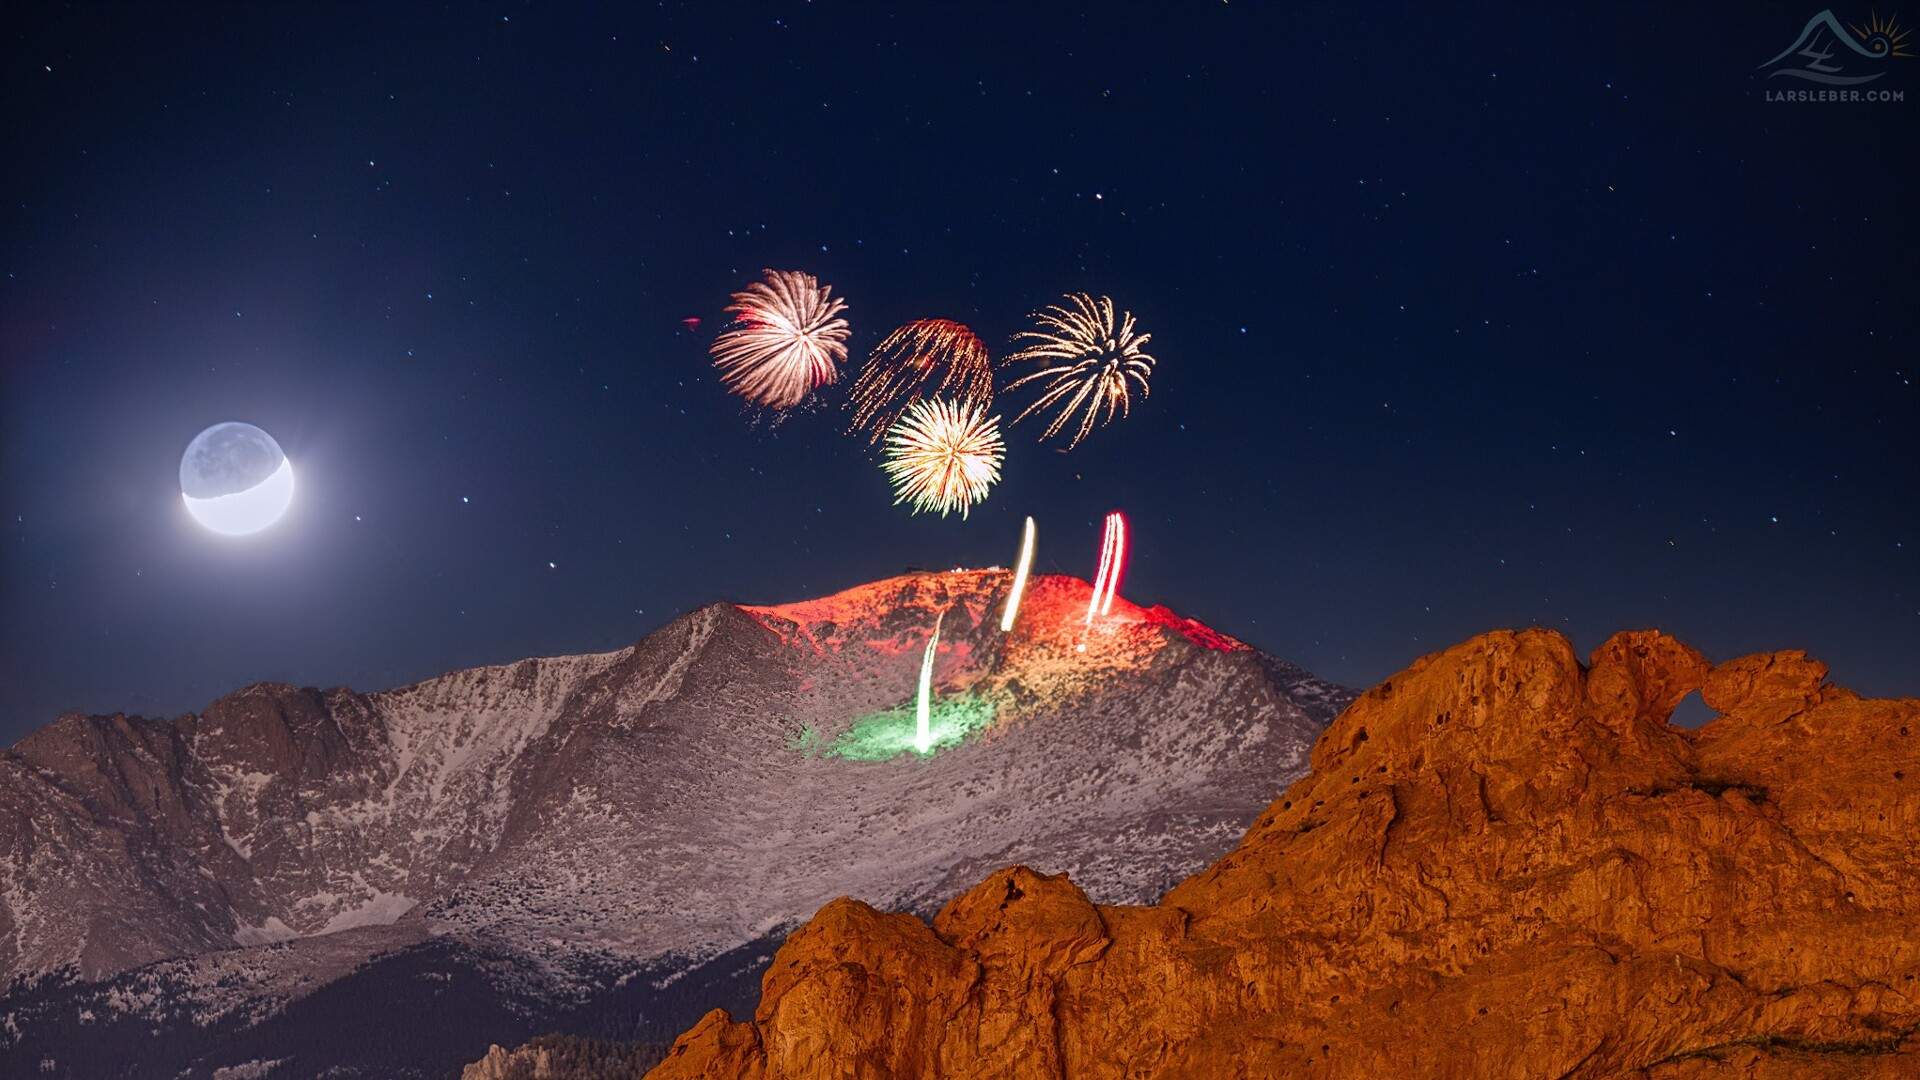 New Years Eve Fireworks on Pikes Peak from Lars Leber Photography.jpg